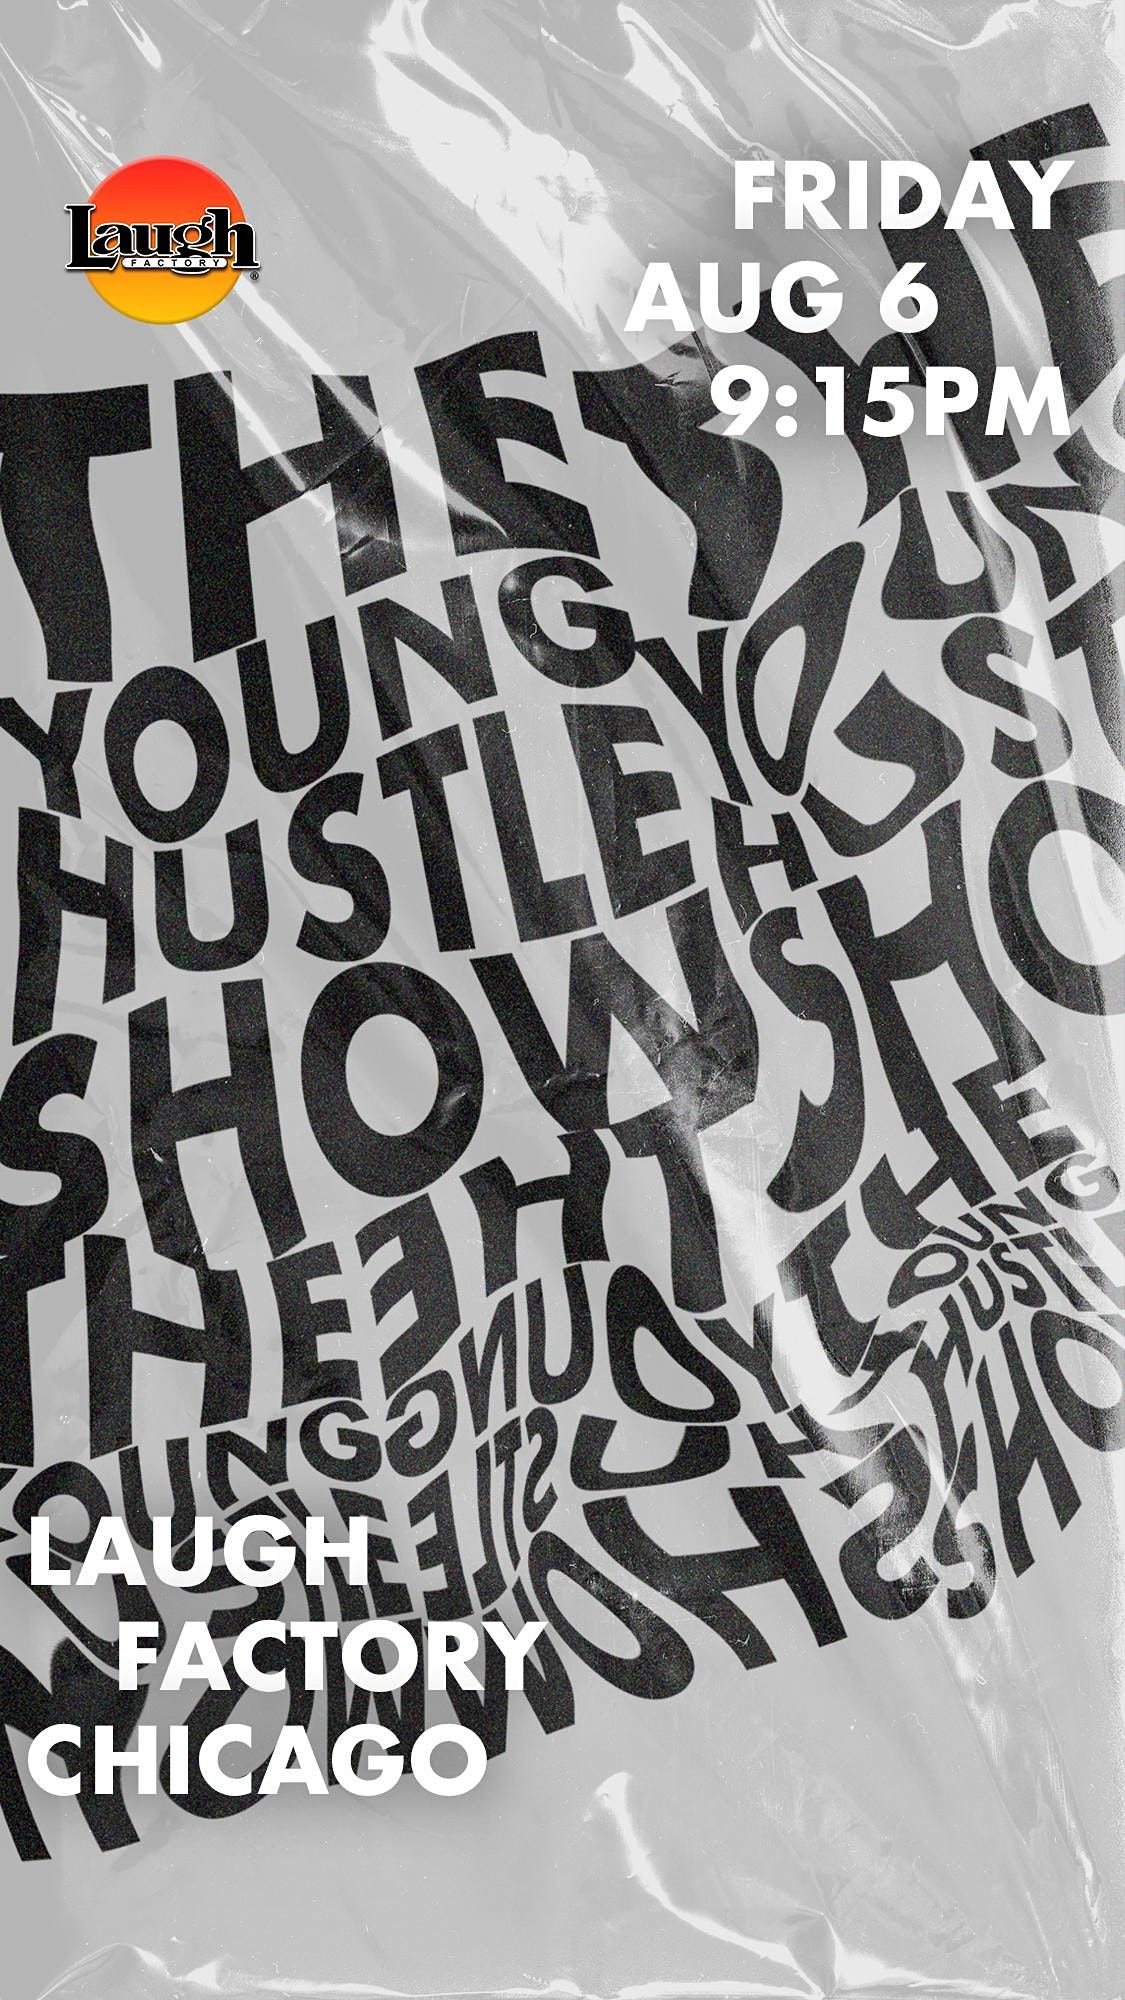 The Young Hustle Show Returns to Laugh Factory Chicago!